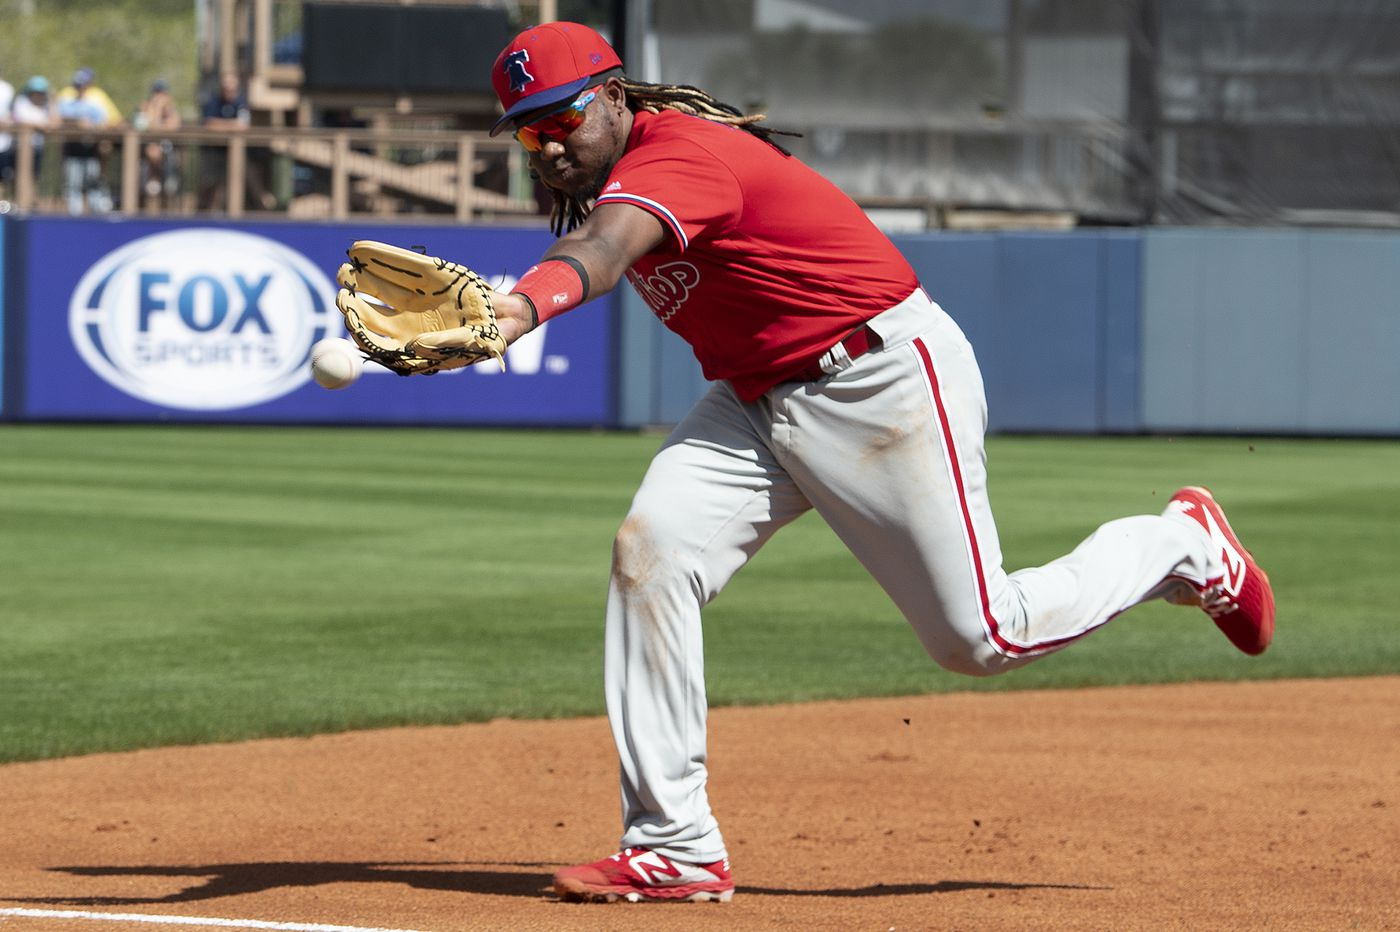 Maikel Franco homers as Phillies top Rays 3-2 in Grapefruit League opener